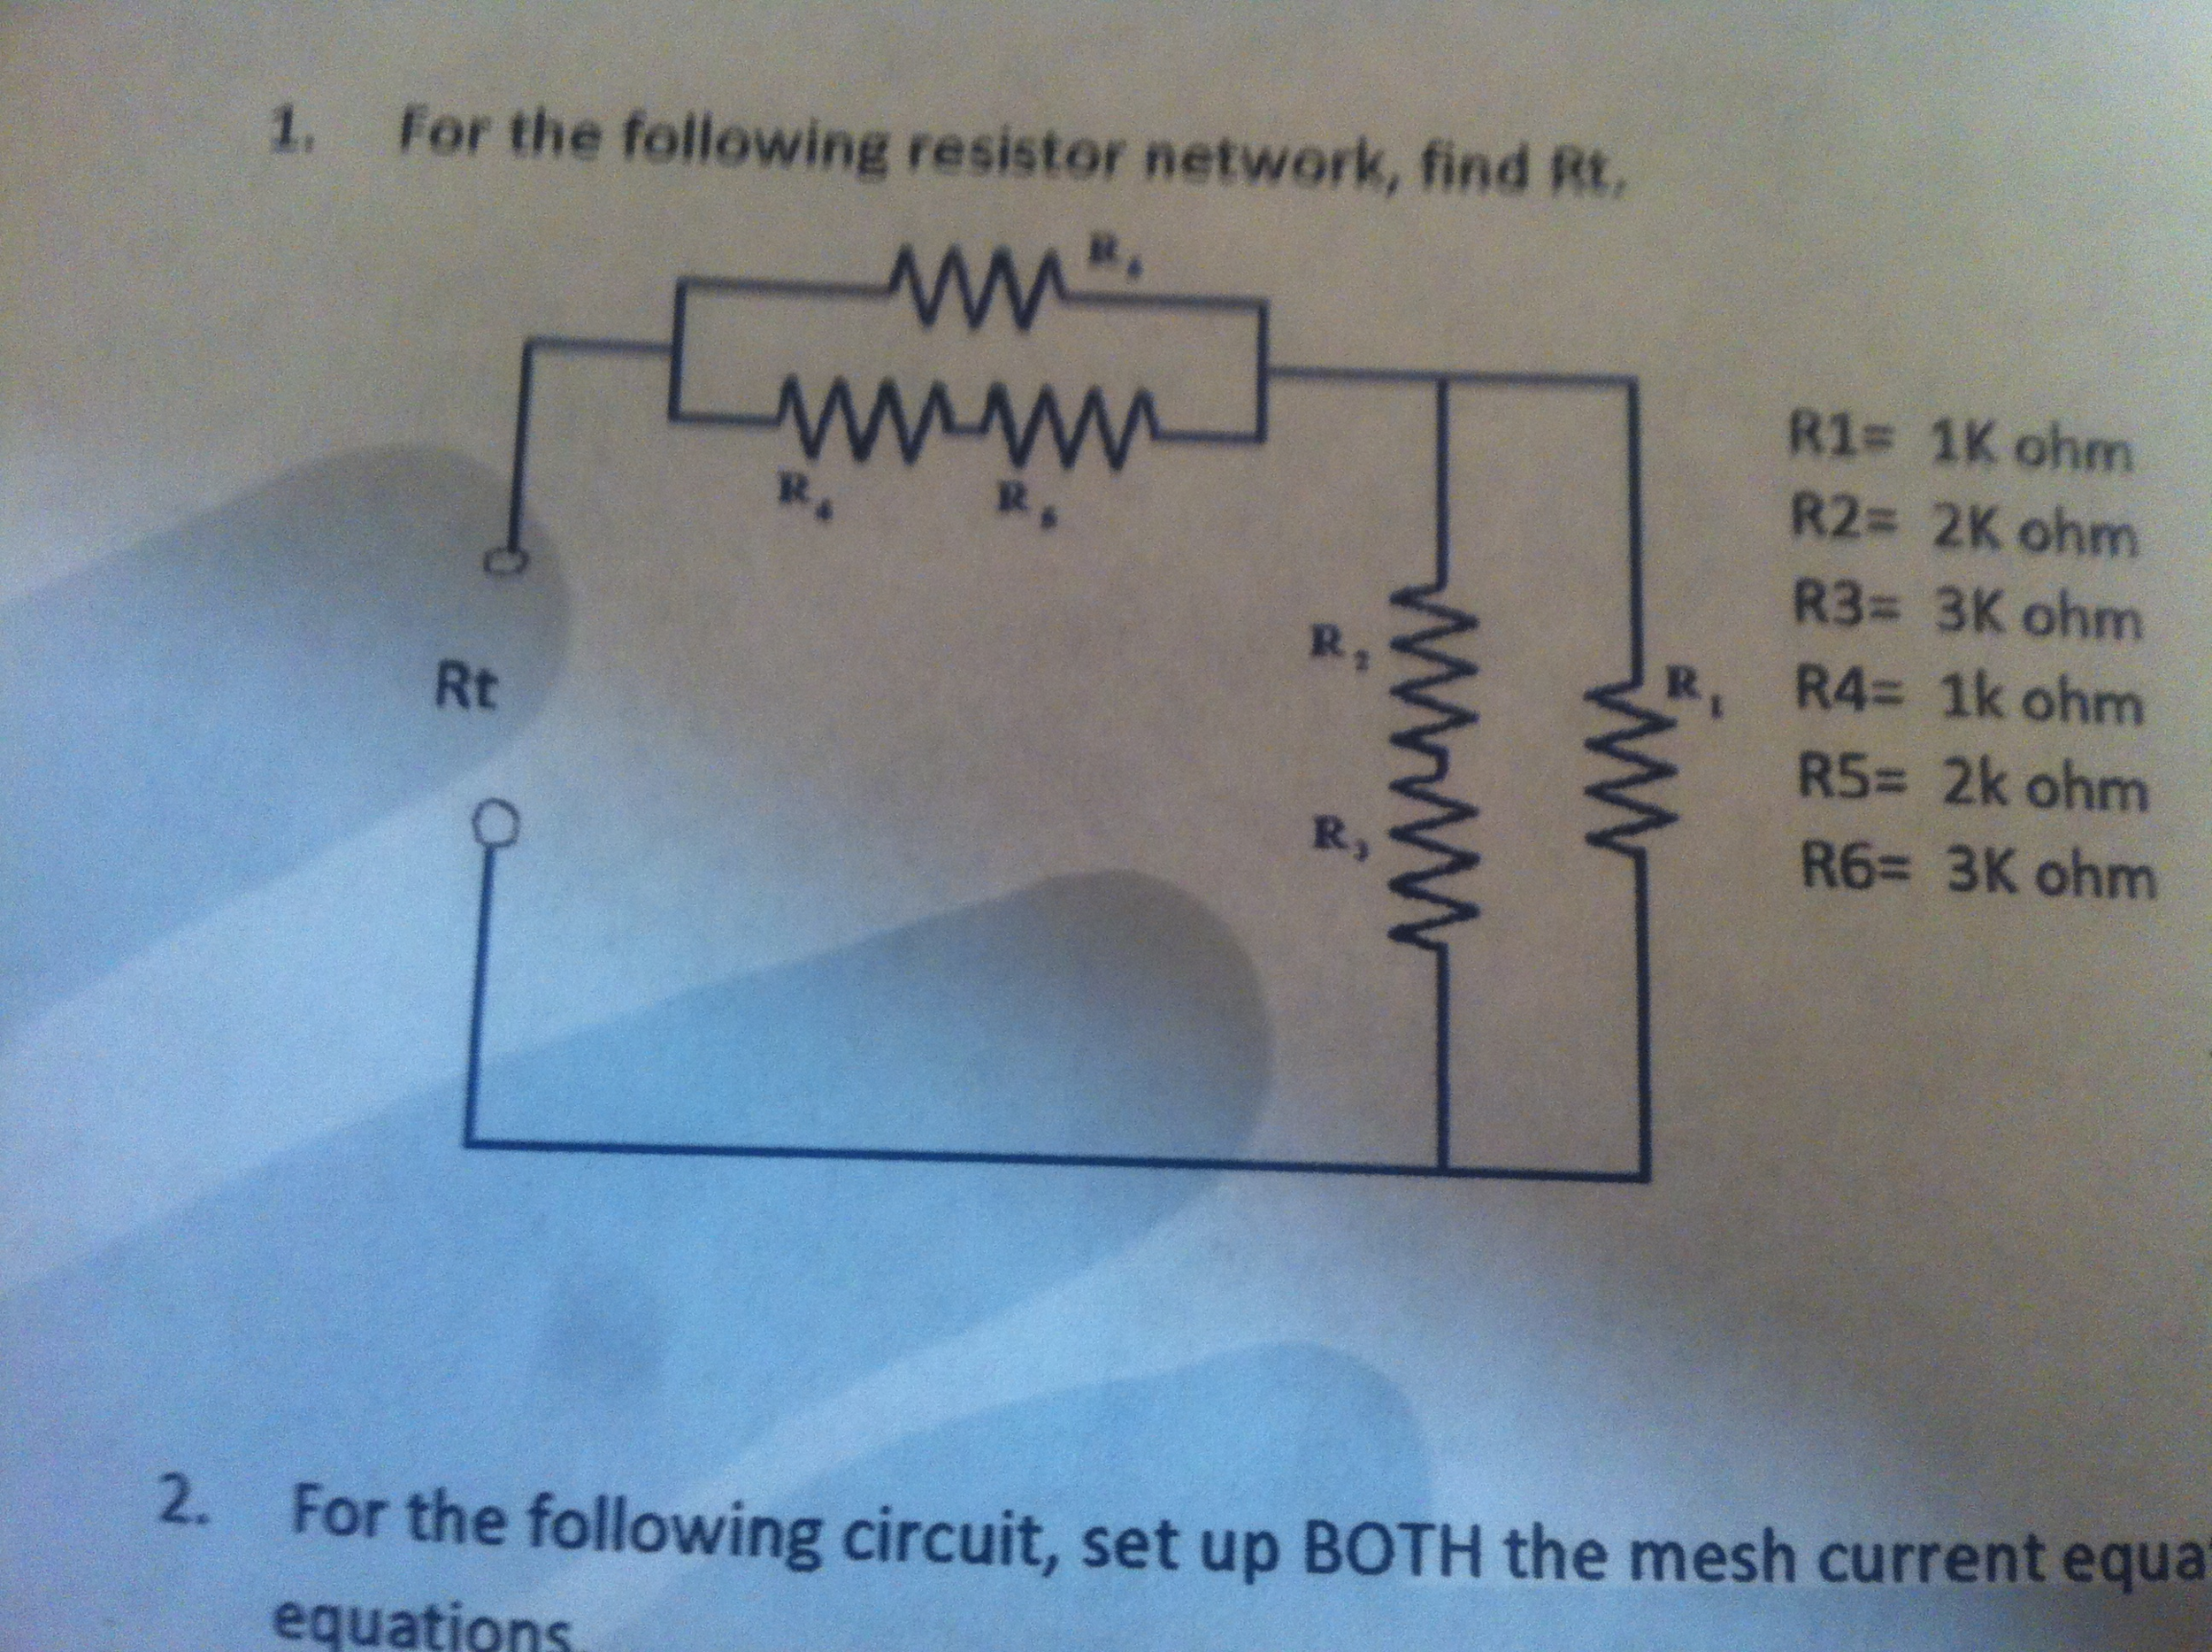 Find the following resistor network, find Rt